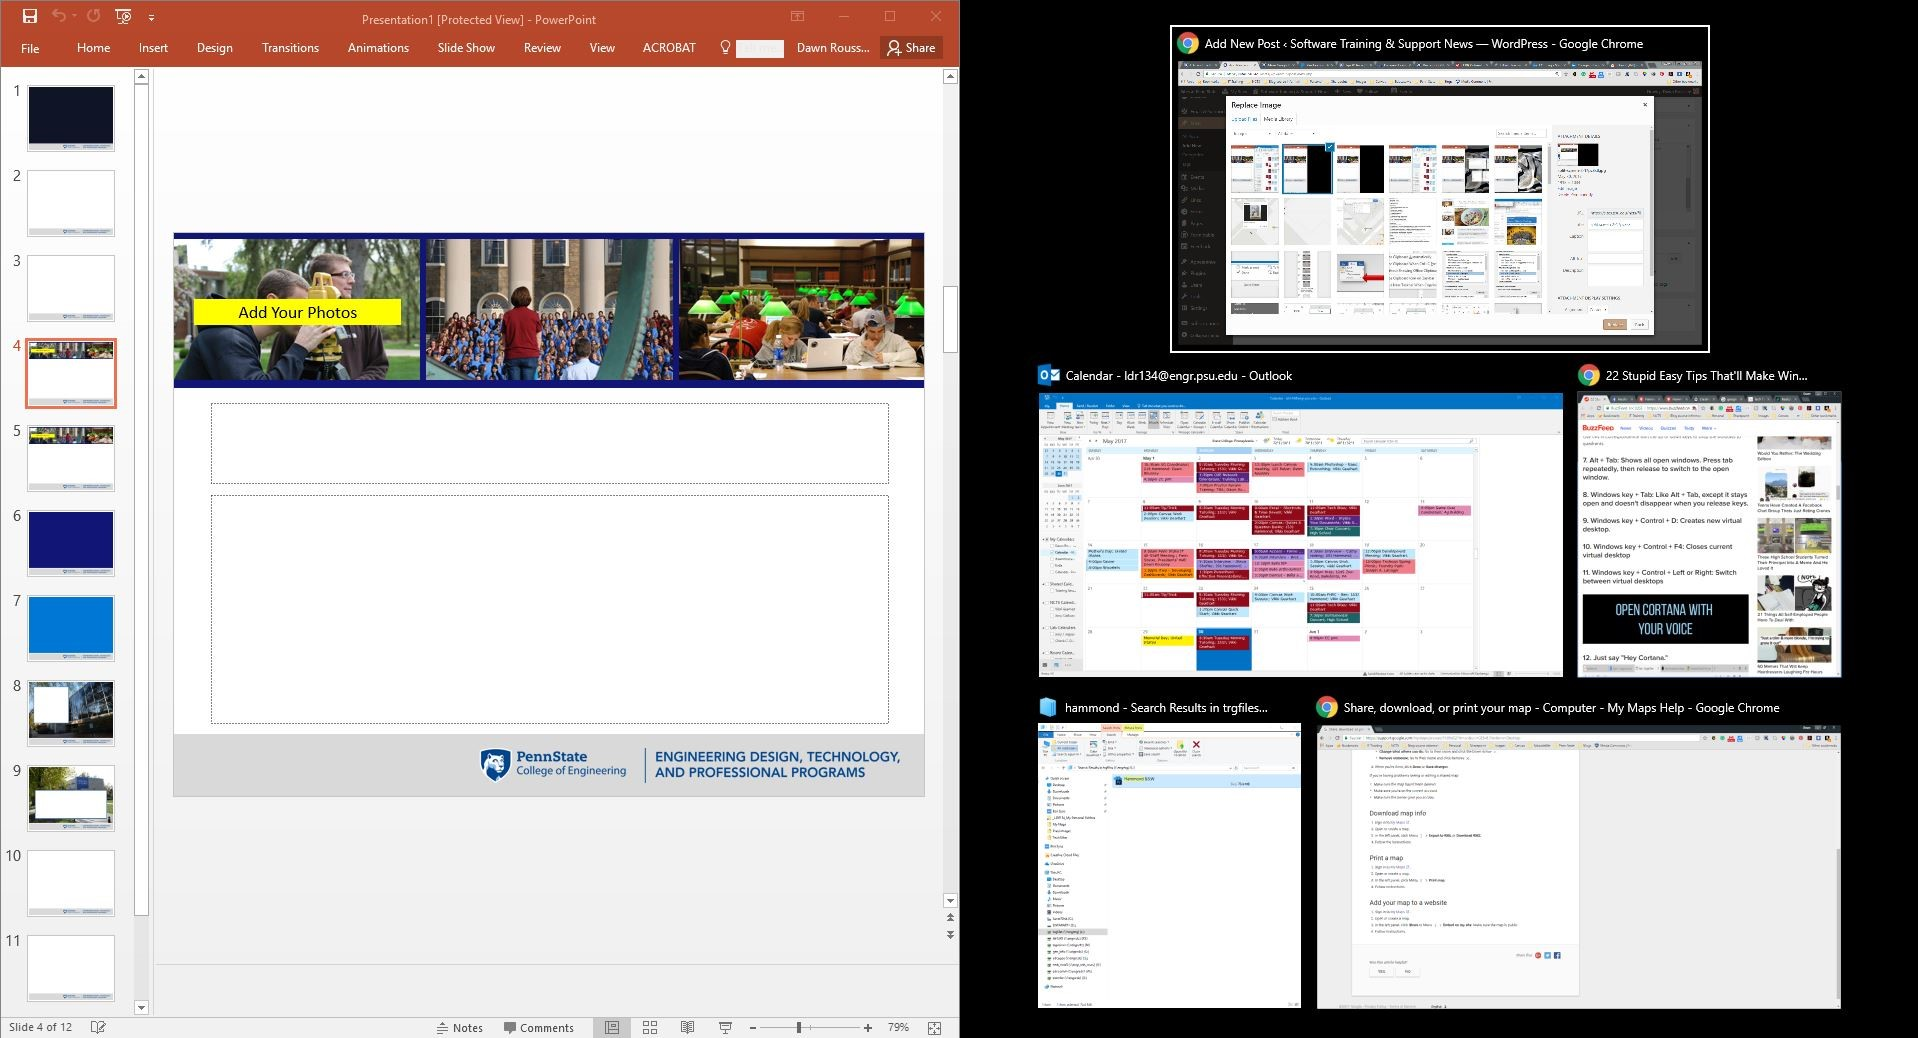 thumbnails of other windows available for split-screen